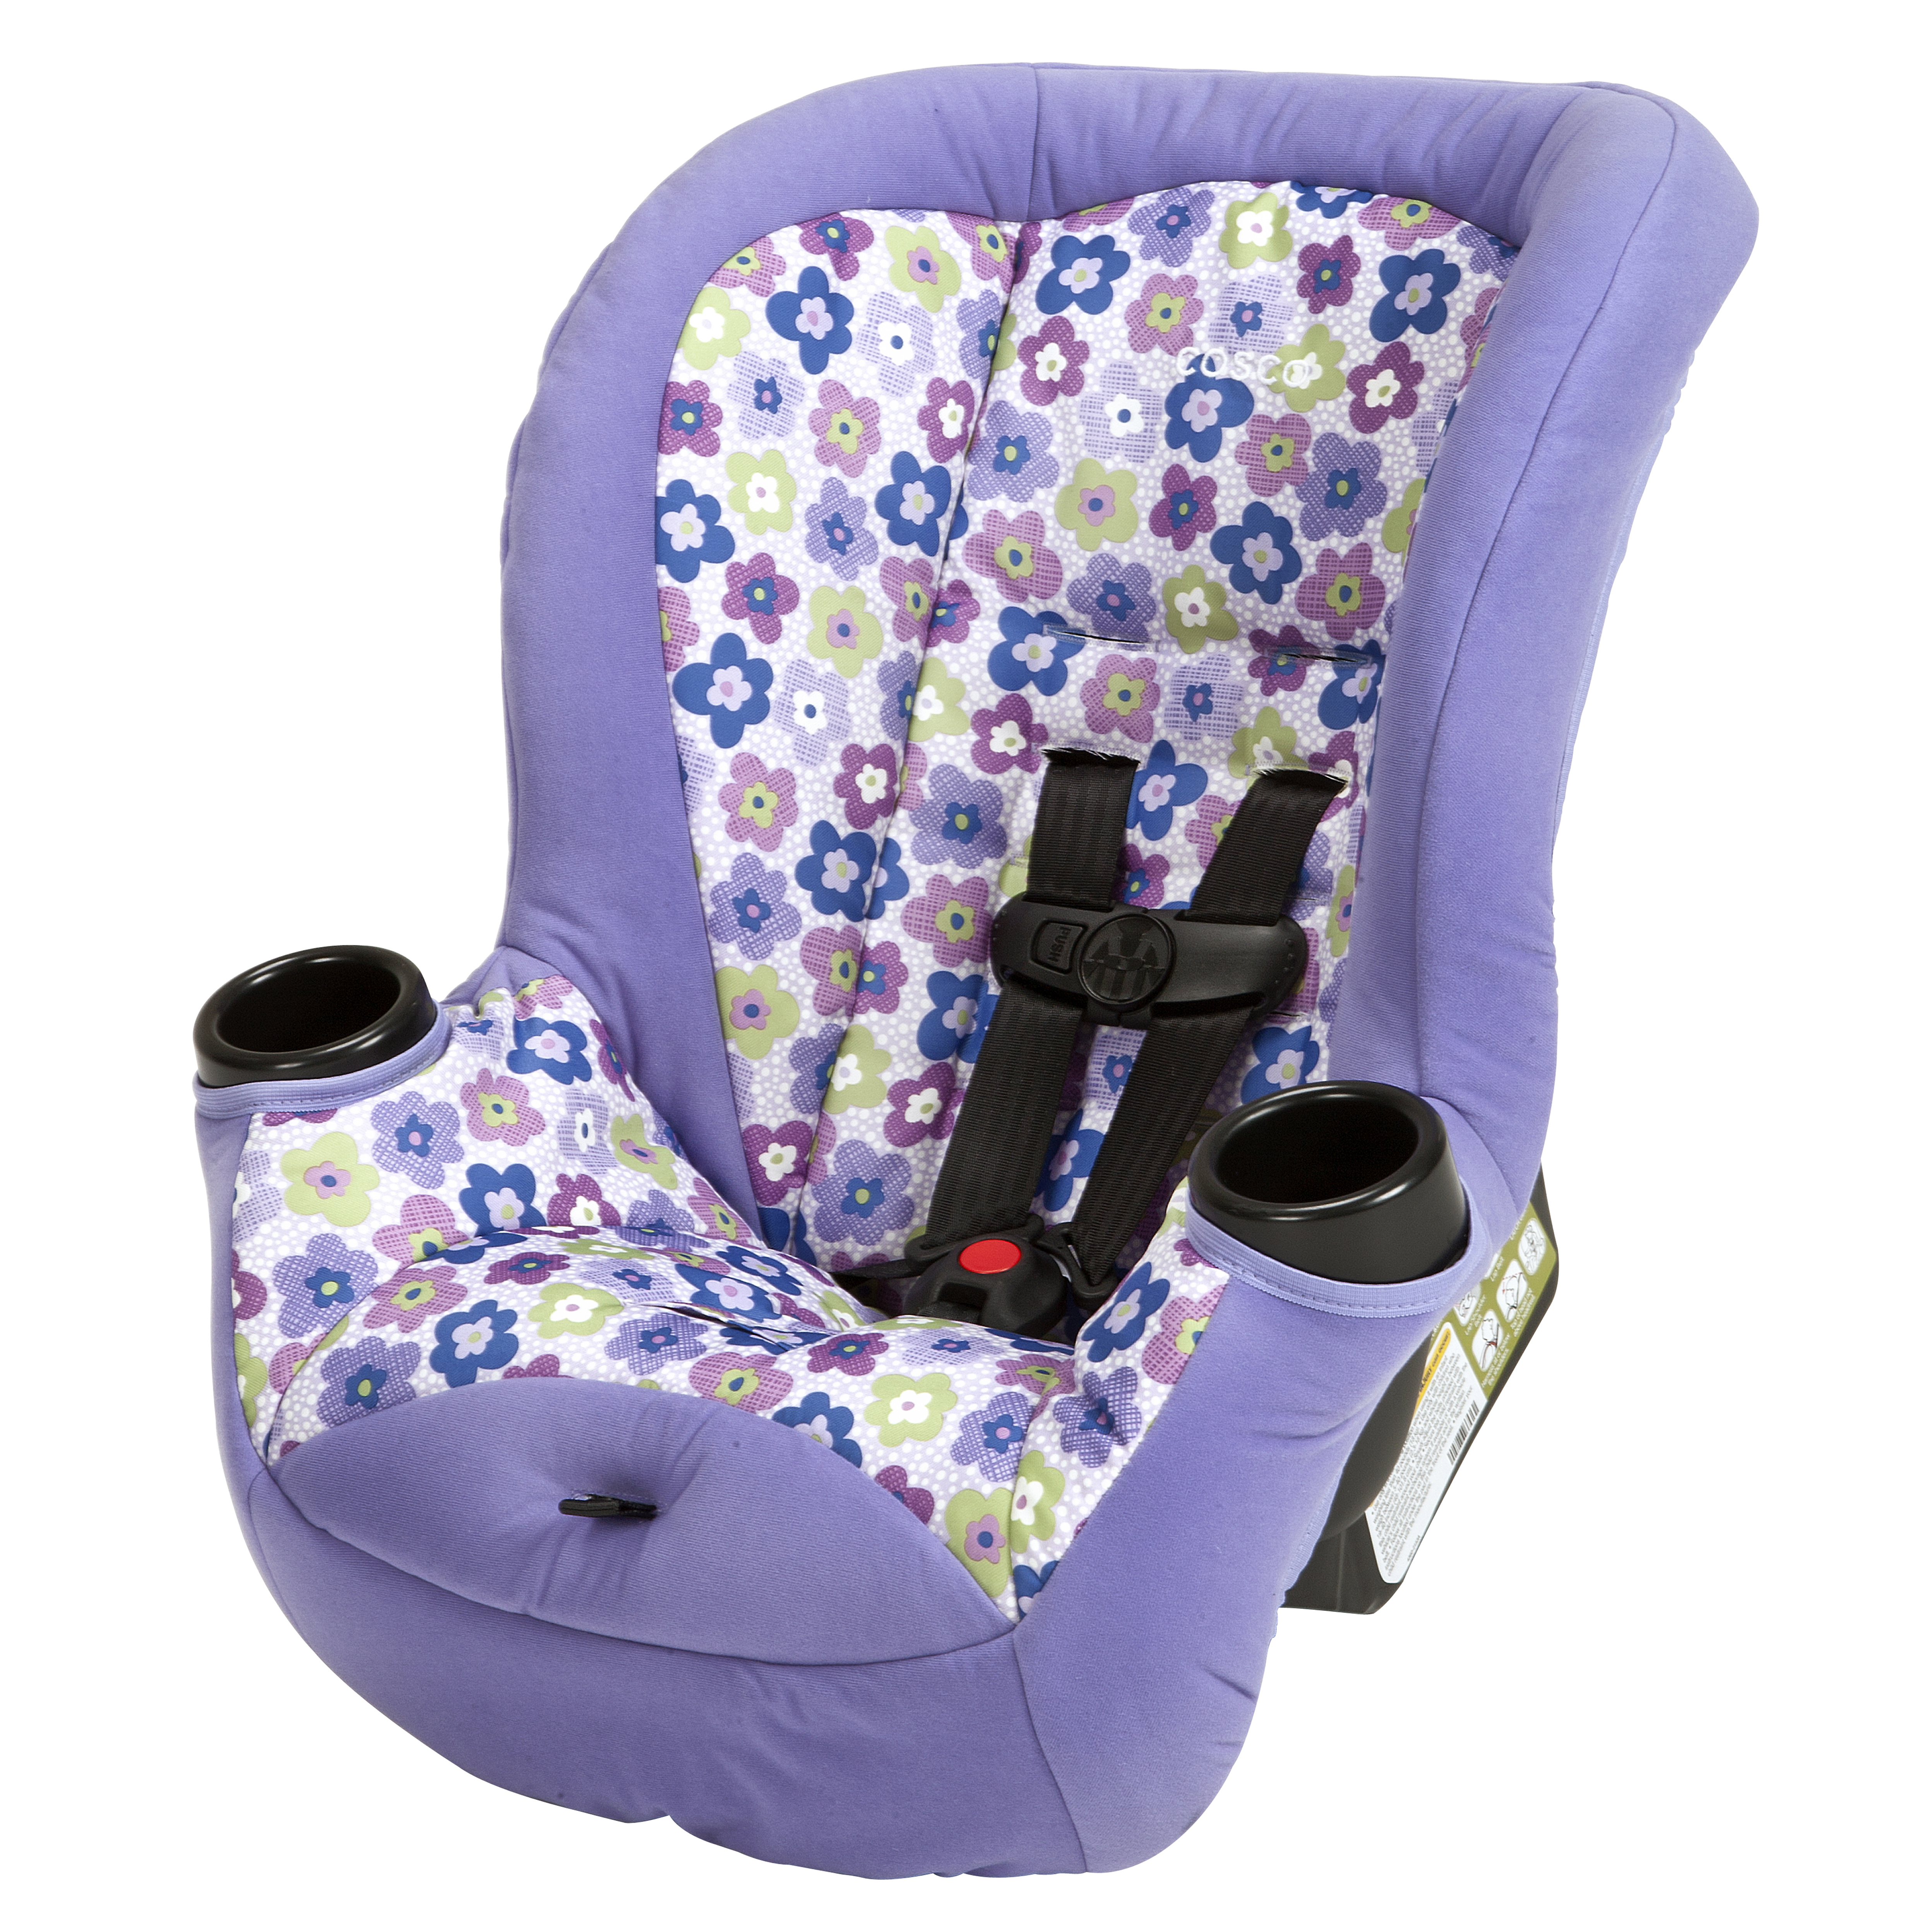 Cosco – Apt 40RF Convertible Car Seat – Rear & Forward Facing Safety Seat – Side Impact Protection – 5-Point Harness